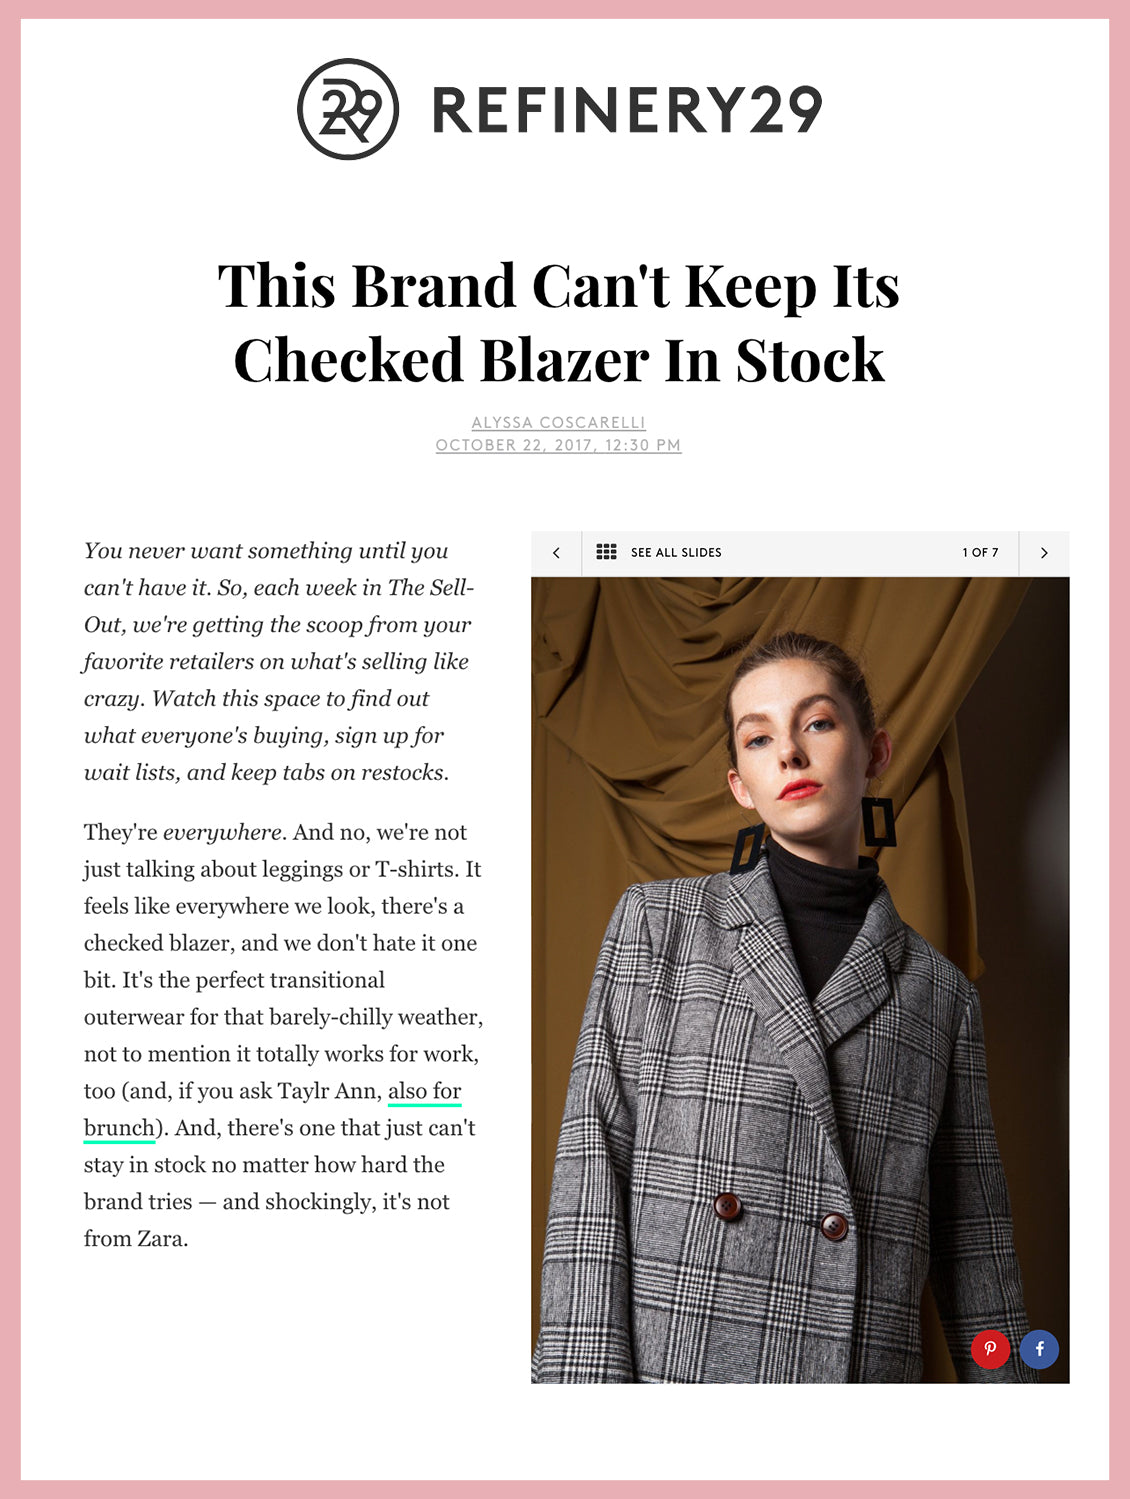 This Brand Cant's Keep Its Checked Blazer in Stock